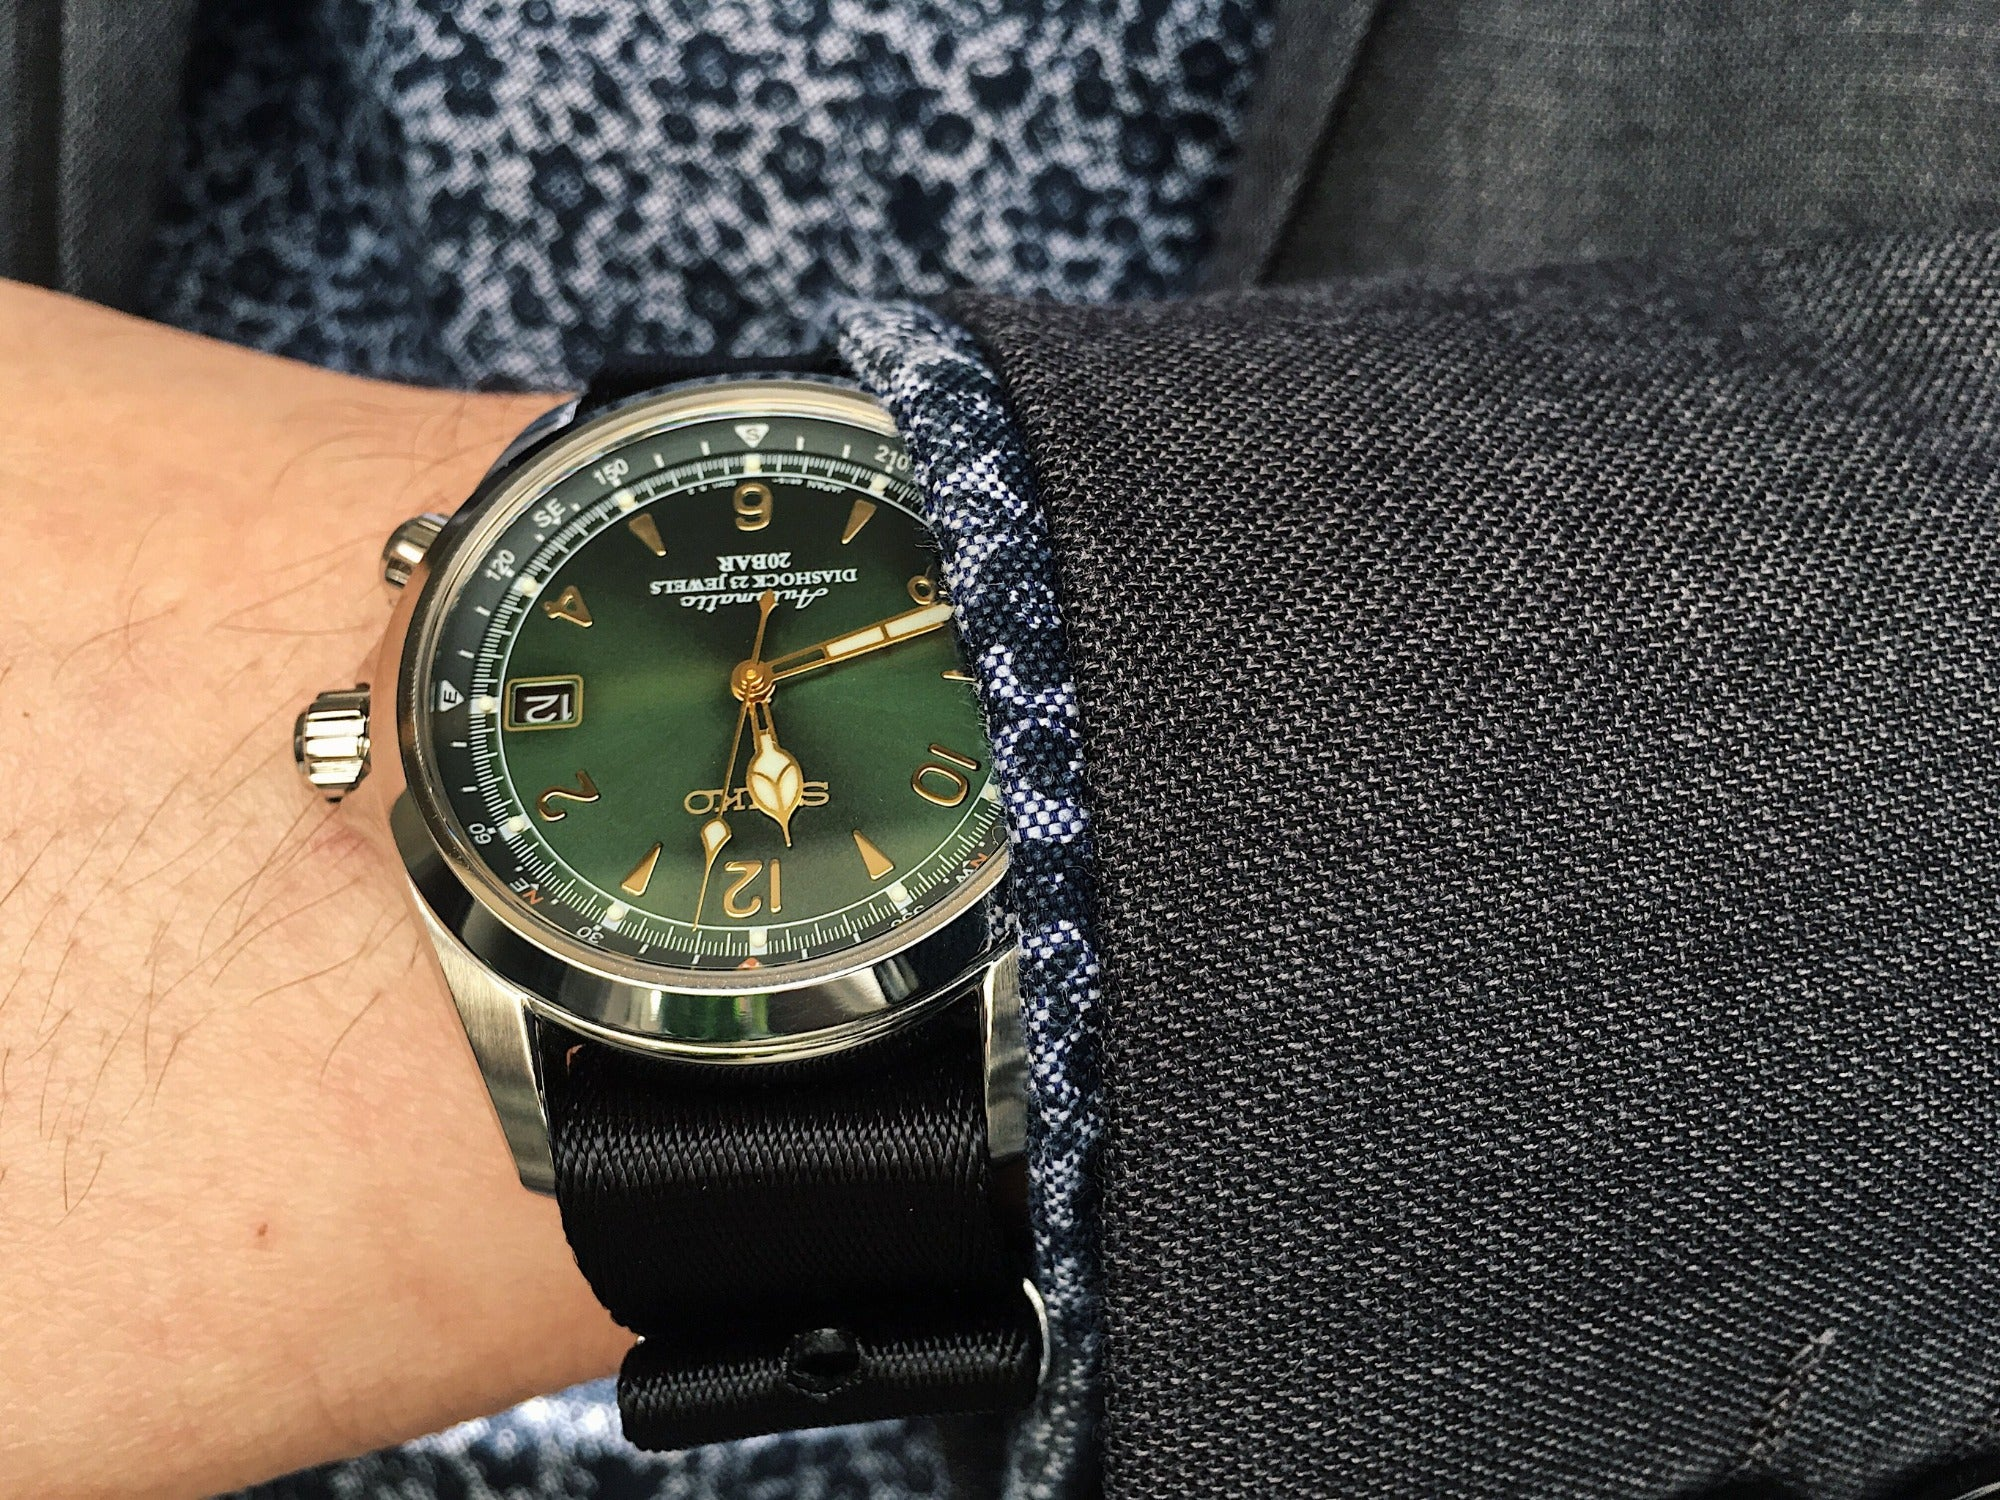 NATO Watch Strap with a suit - Seiko Alpinist